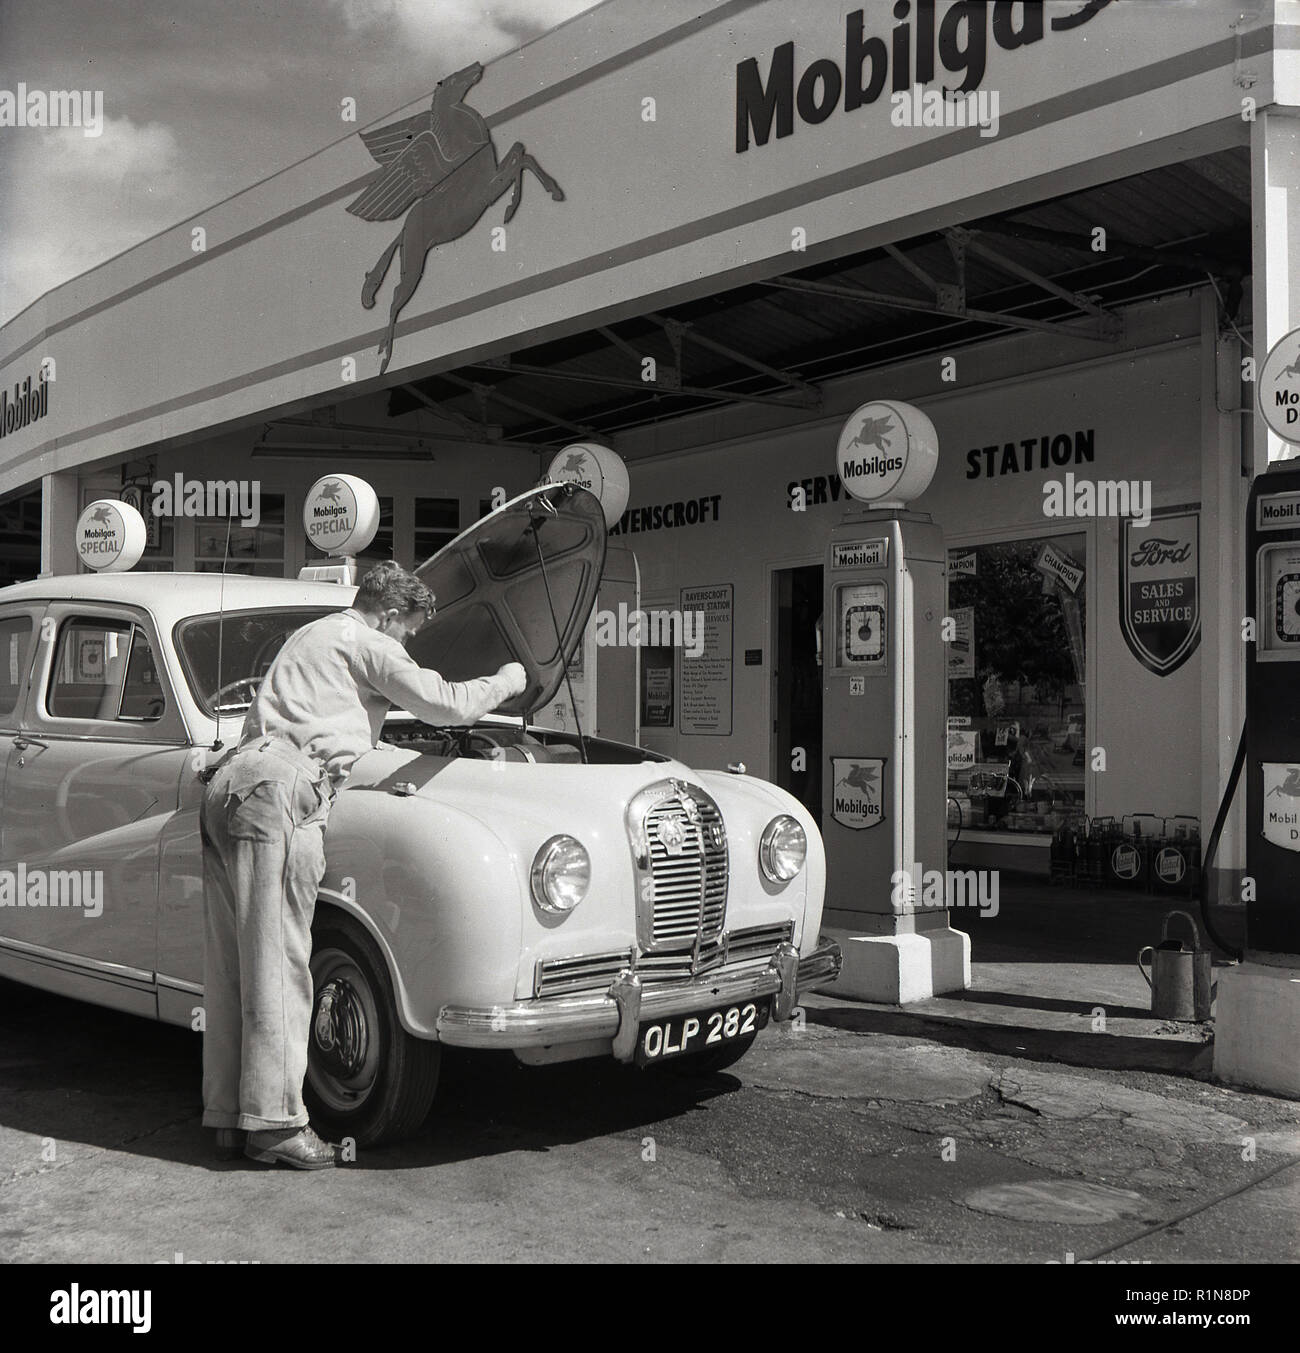 1950s, historical, the golden days of motoring, a service station sttendant checks the oil on an Austin car parked at the petrol pumps at the Mobilgas Ravenscroft Service Station, Great West Road, London, England, UK. - Stock Image